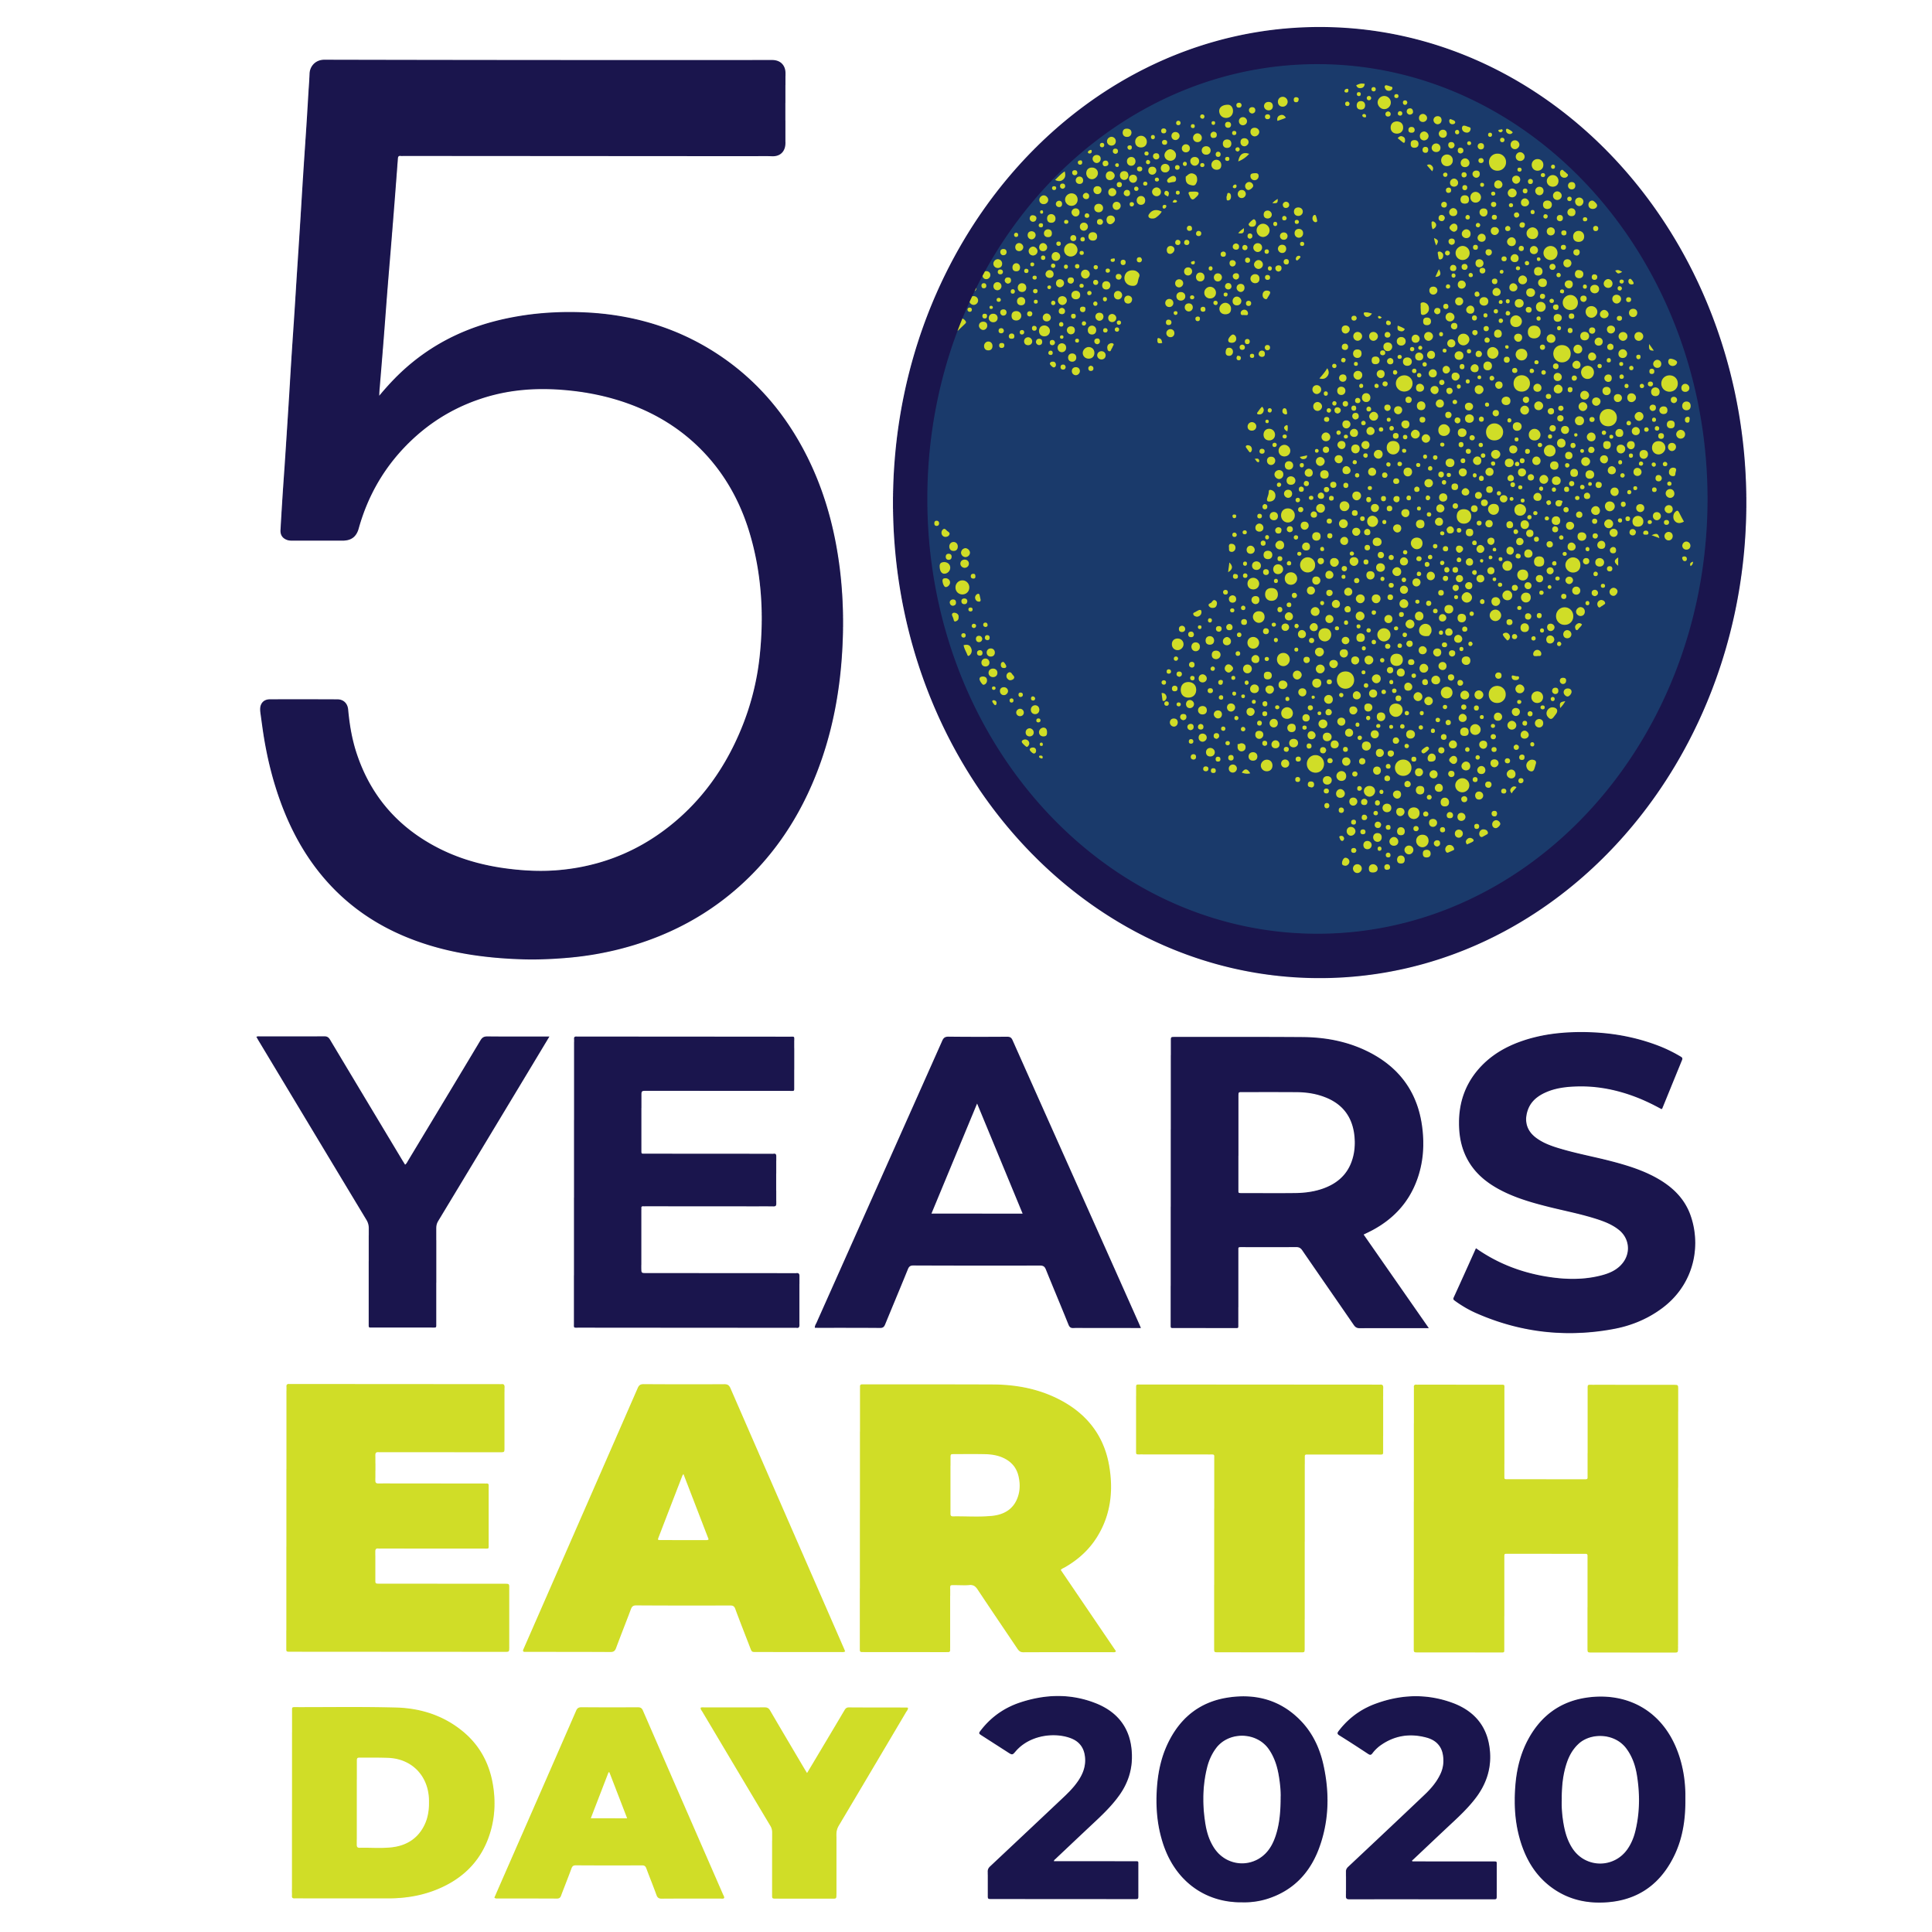 Earth-Day-logo blue square